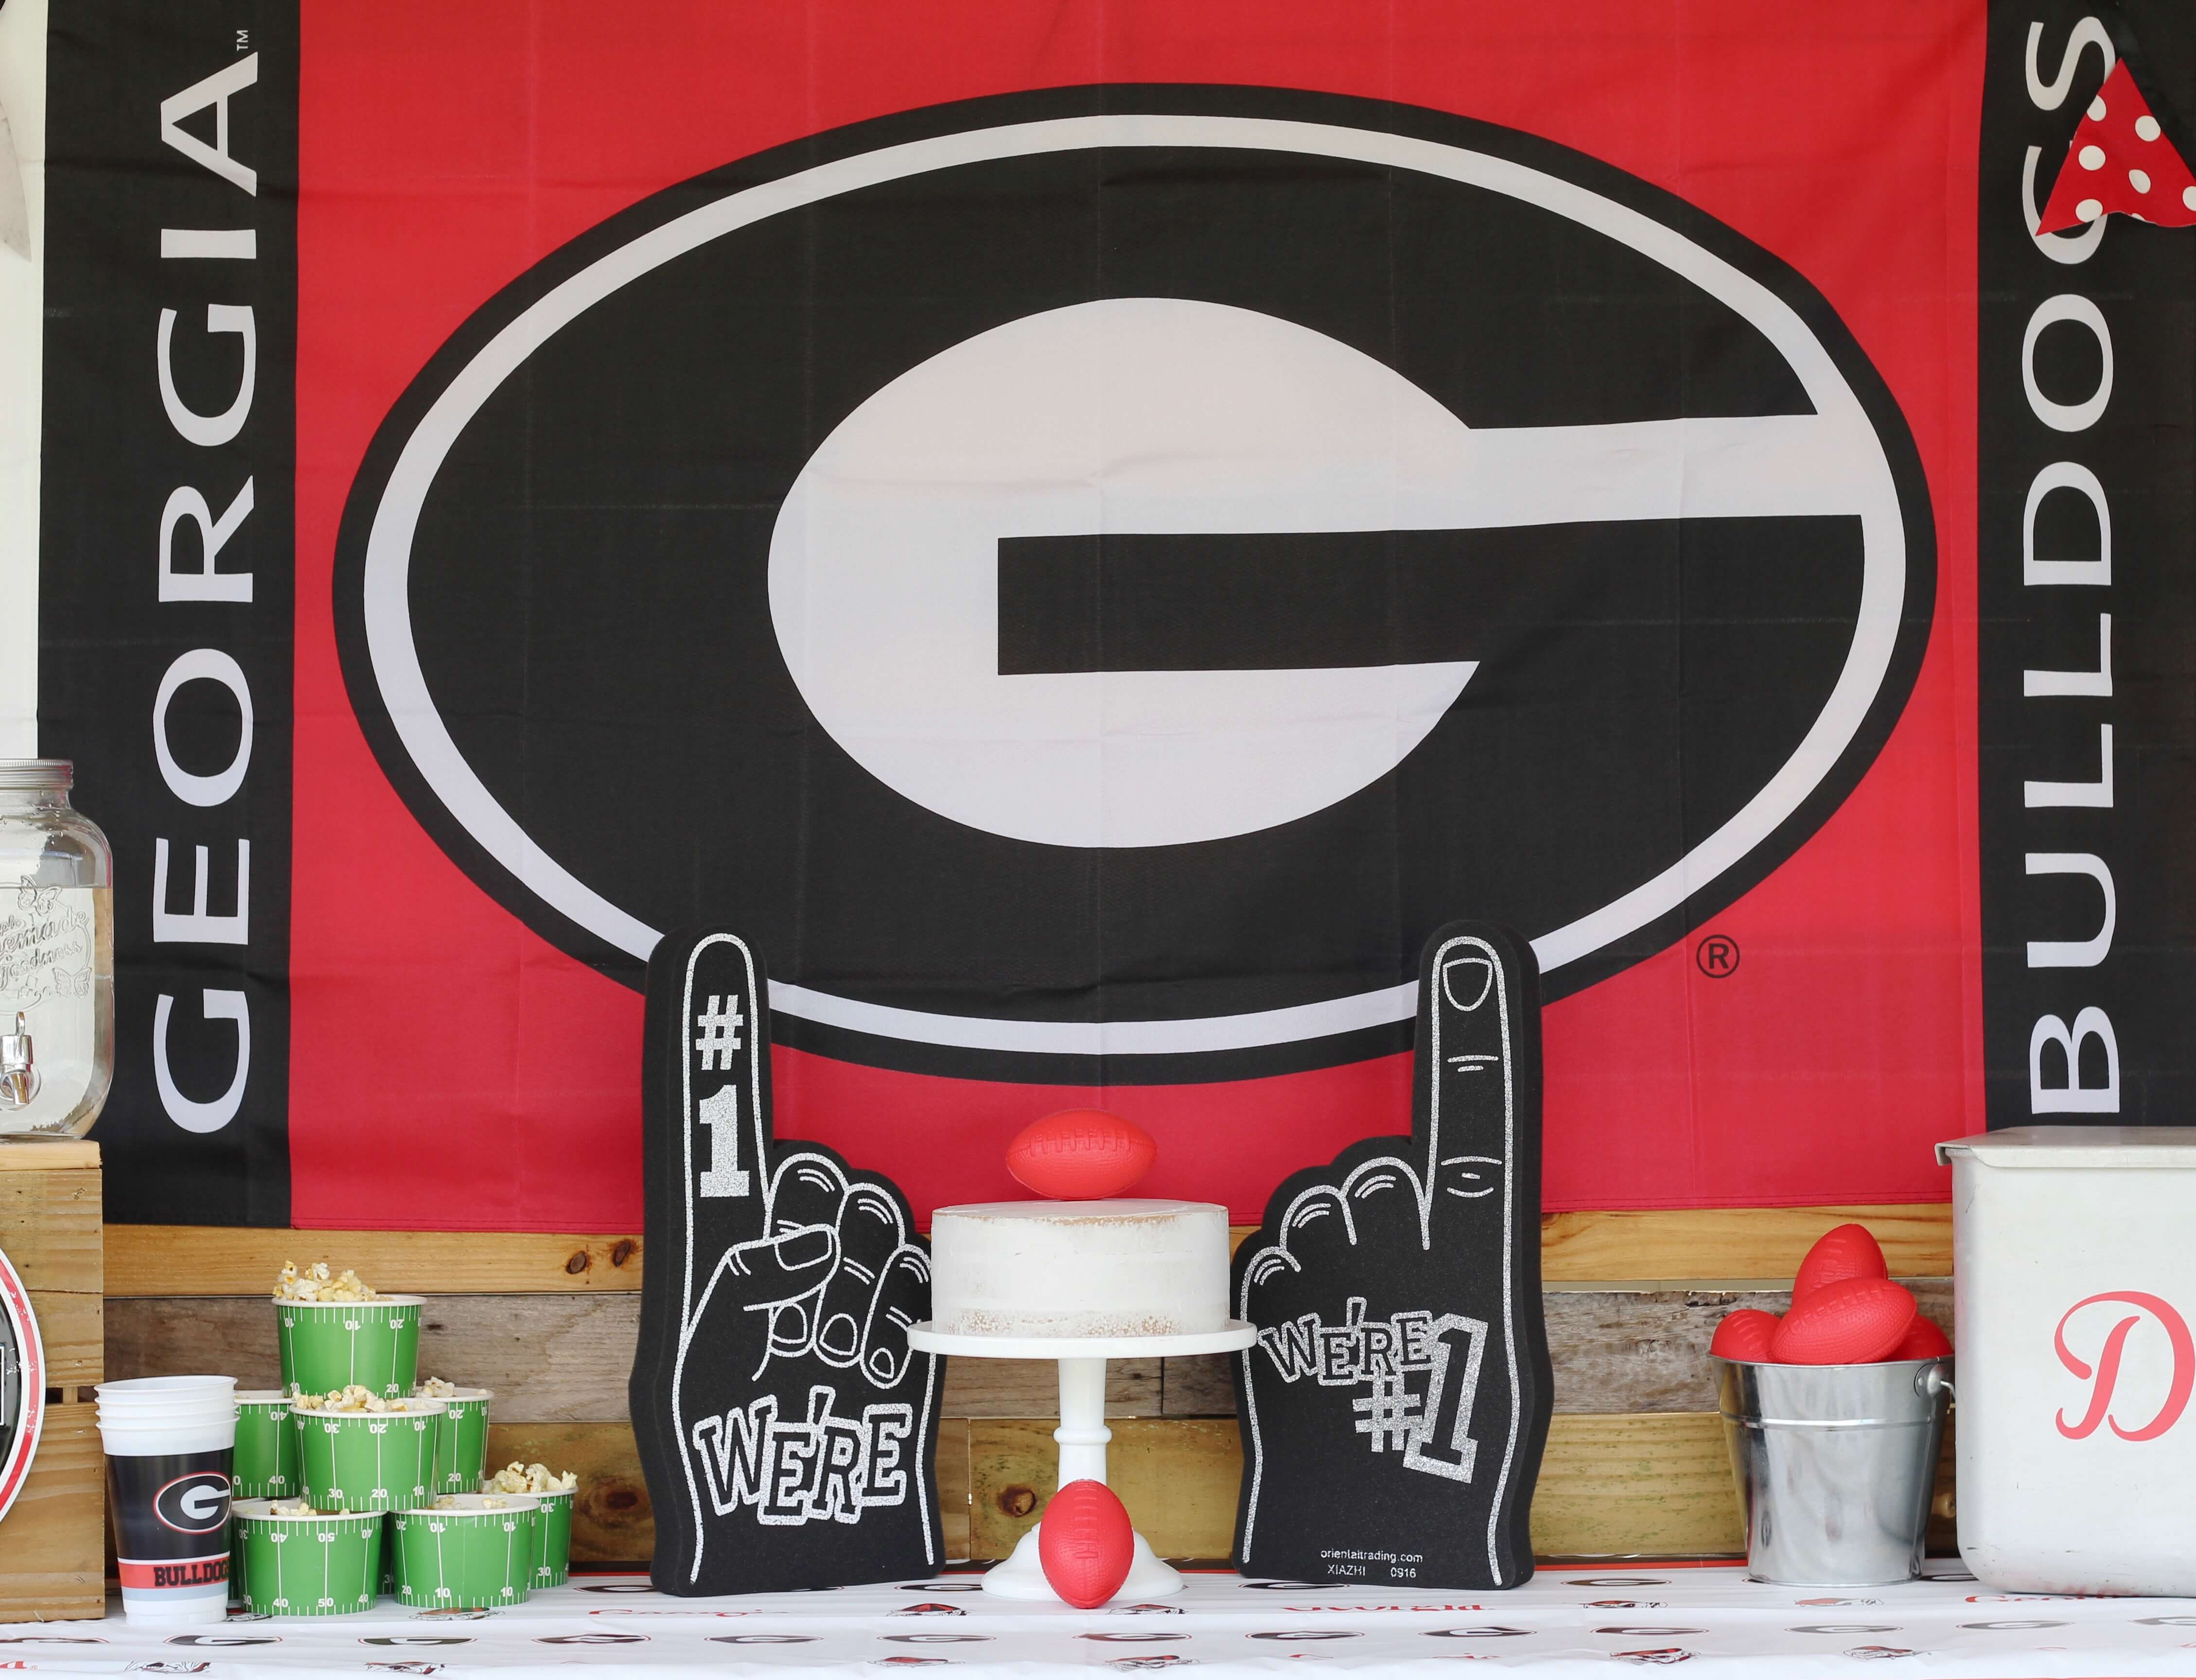 Check out this fantastic tailgate themed football party! Jessica, of Everyday Party Magazine, has a four sons that eat, drink and sleep sports. A football tailgate party was the perfect theme to kick off College Football Season! Father and sons are rabid Georgia Dawgs fans so the Dawgs starred at this party, but you could use a generic theme of football or substitute your family's favorite team and colors. From to the football-themed cake to the tailgate appropriate menu of party food, this party was a touchdown